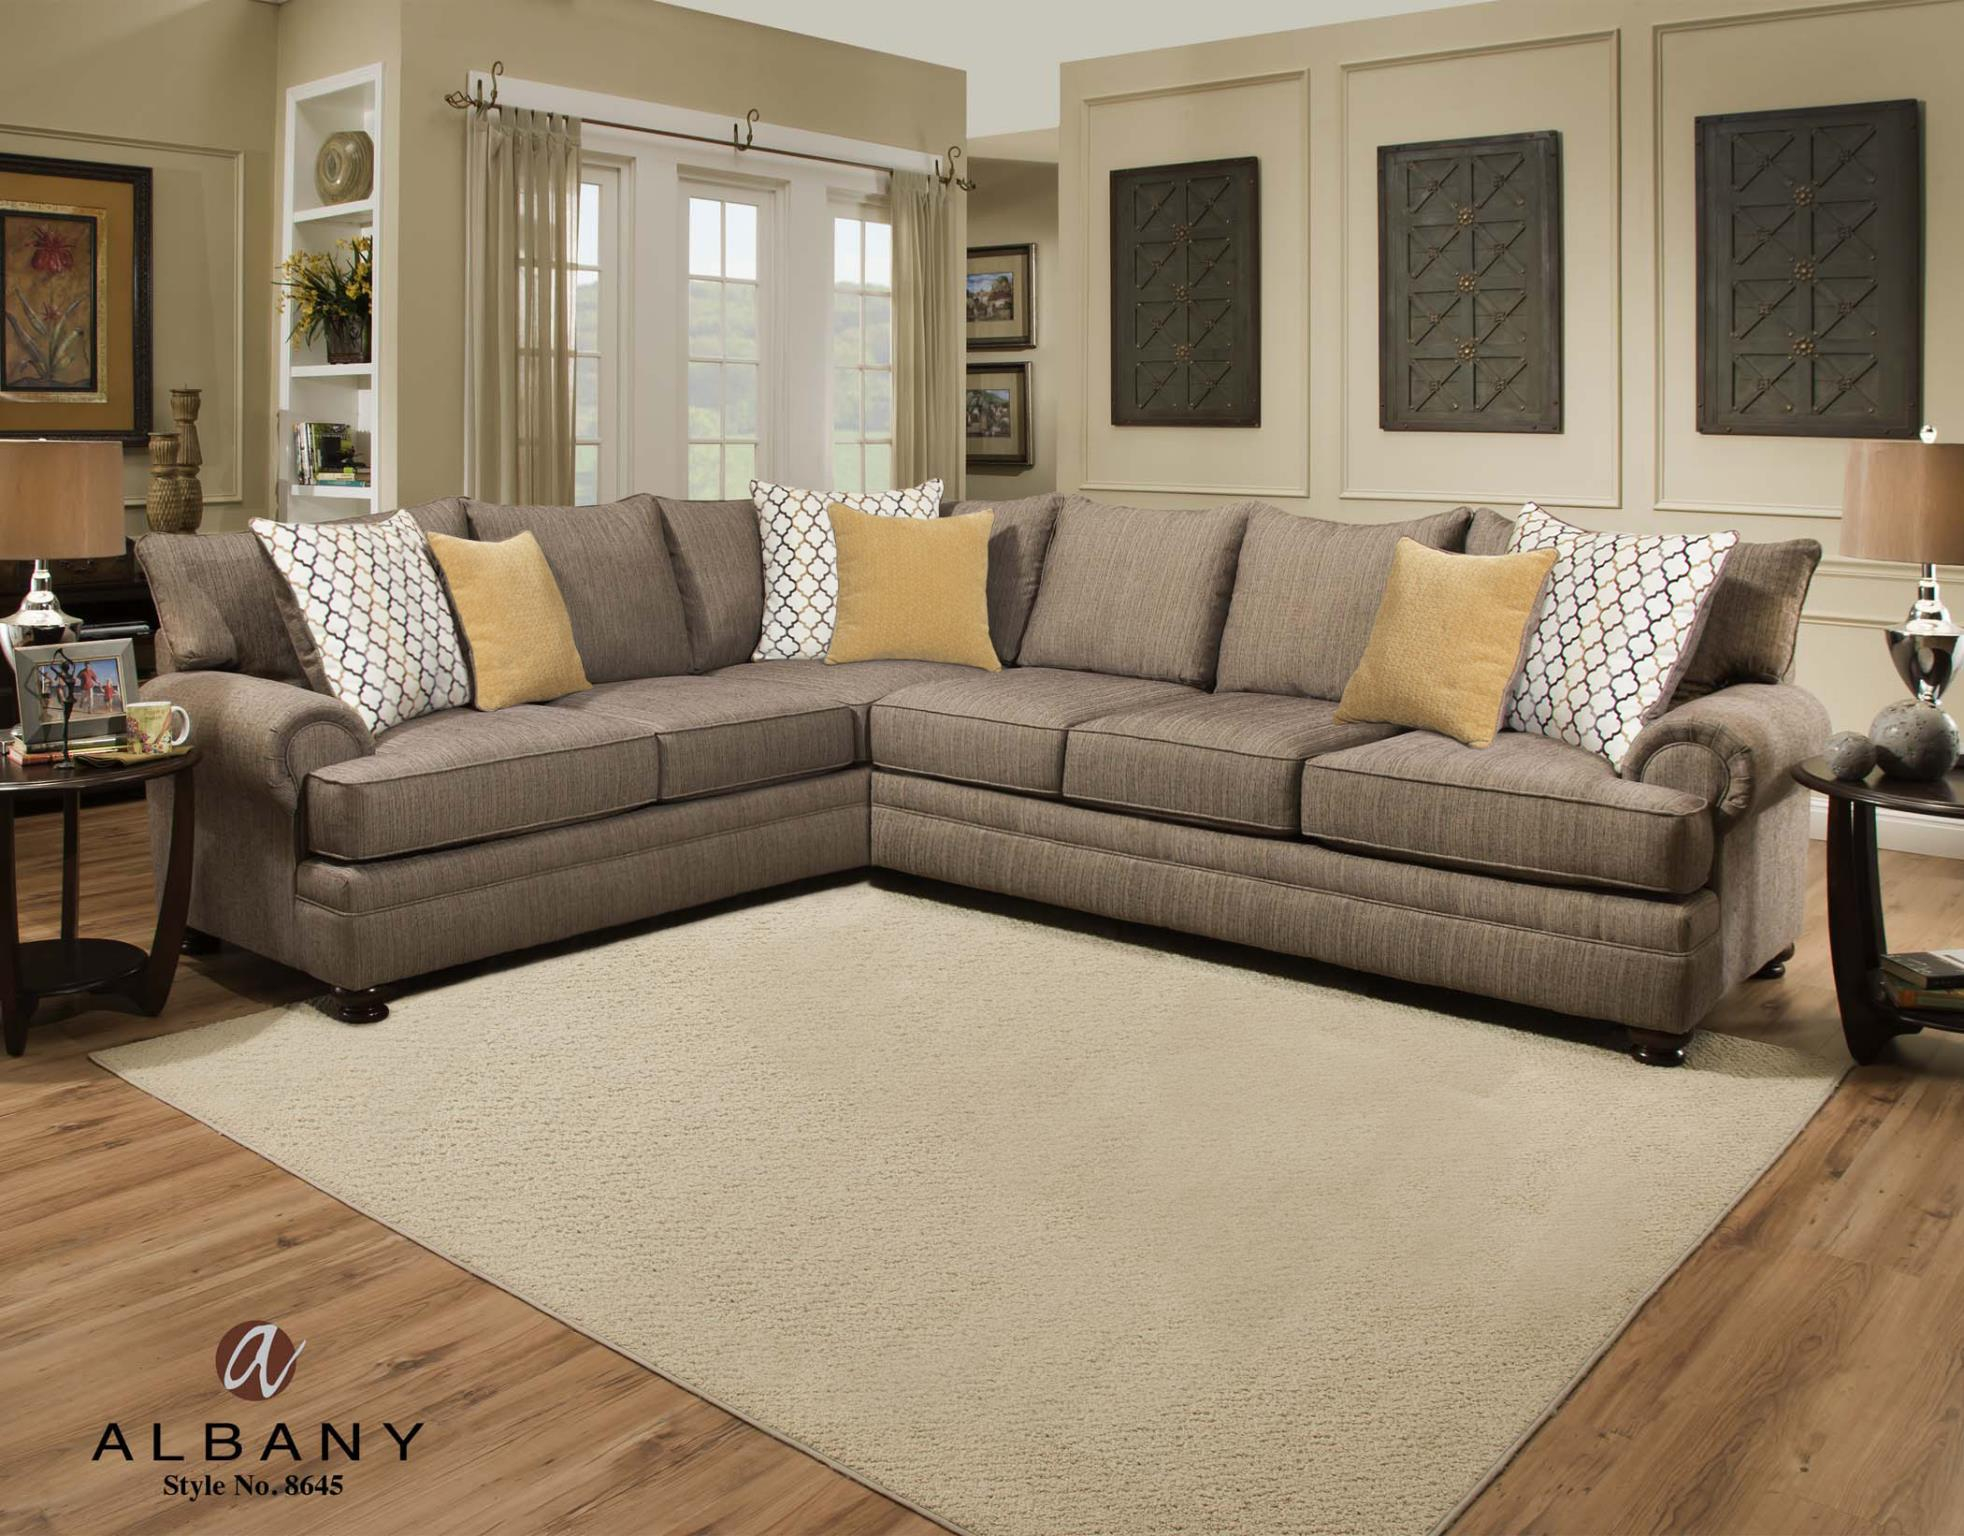 motion sofa definition affordable comfortable sectional sofas albany 8645 essence pewter loosiers furniture express